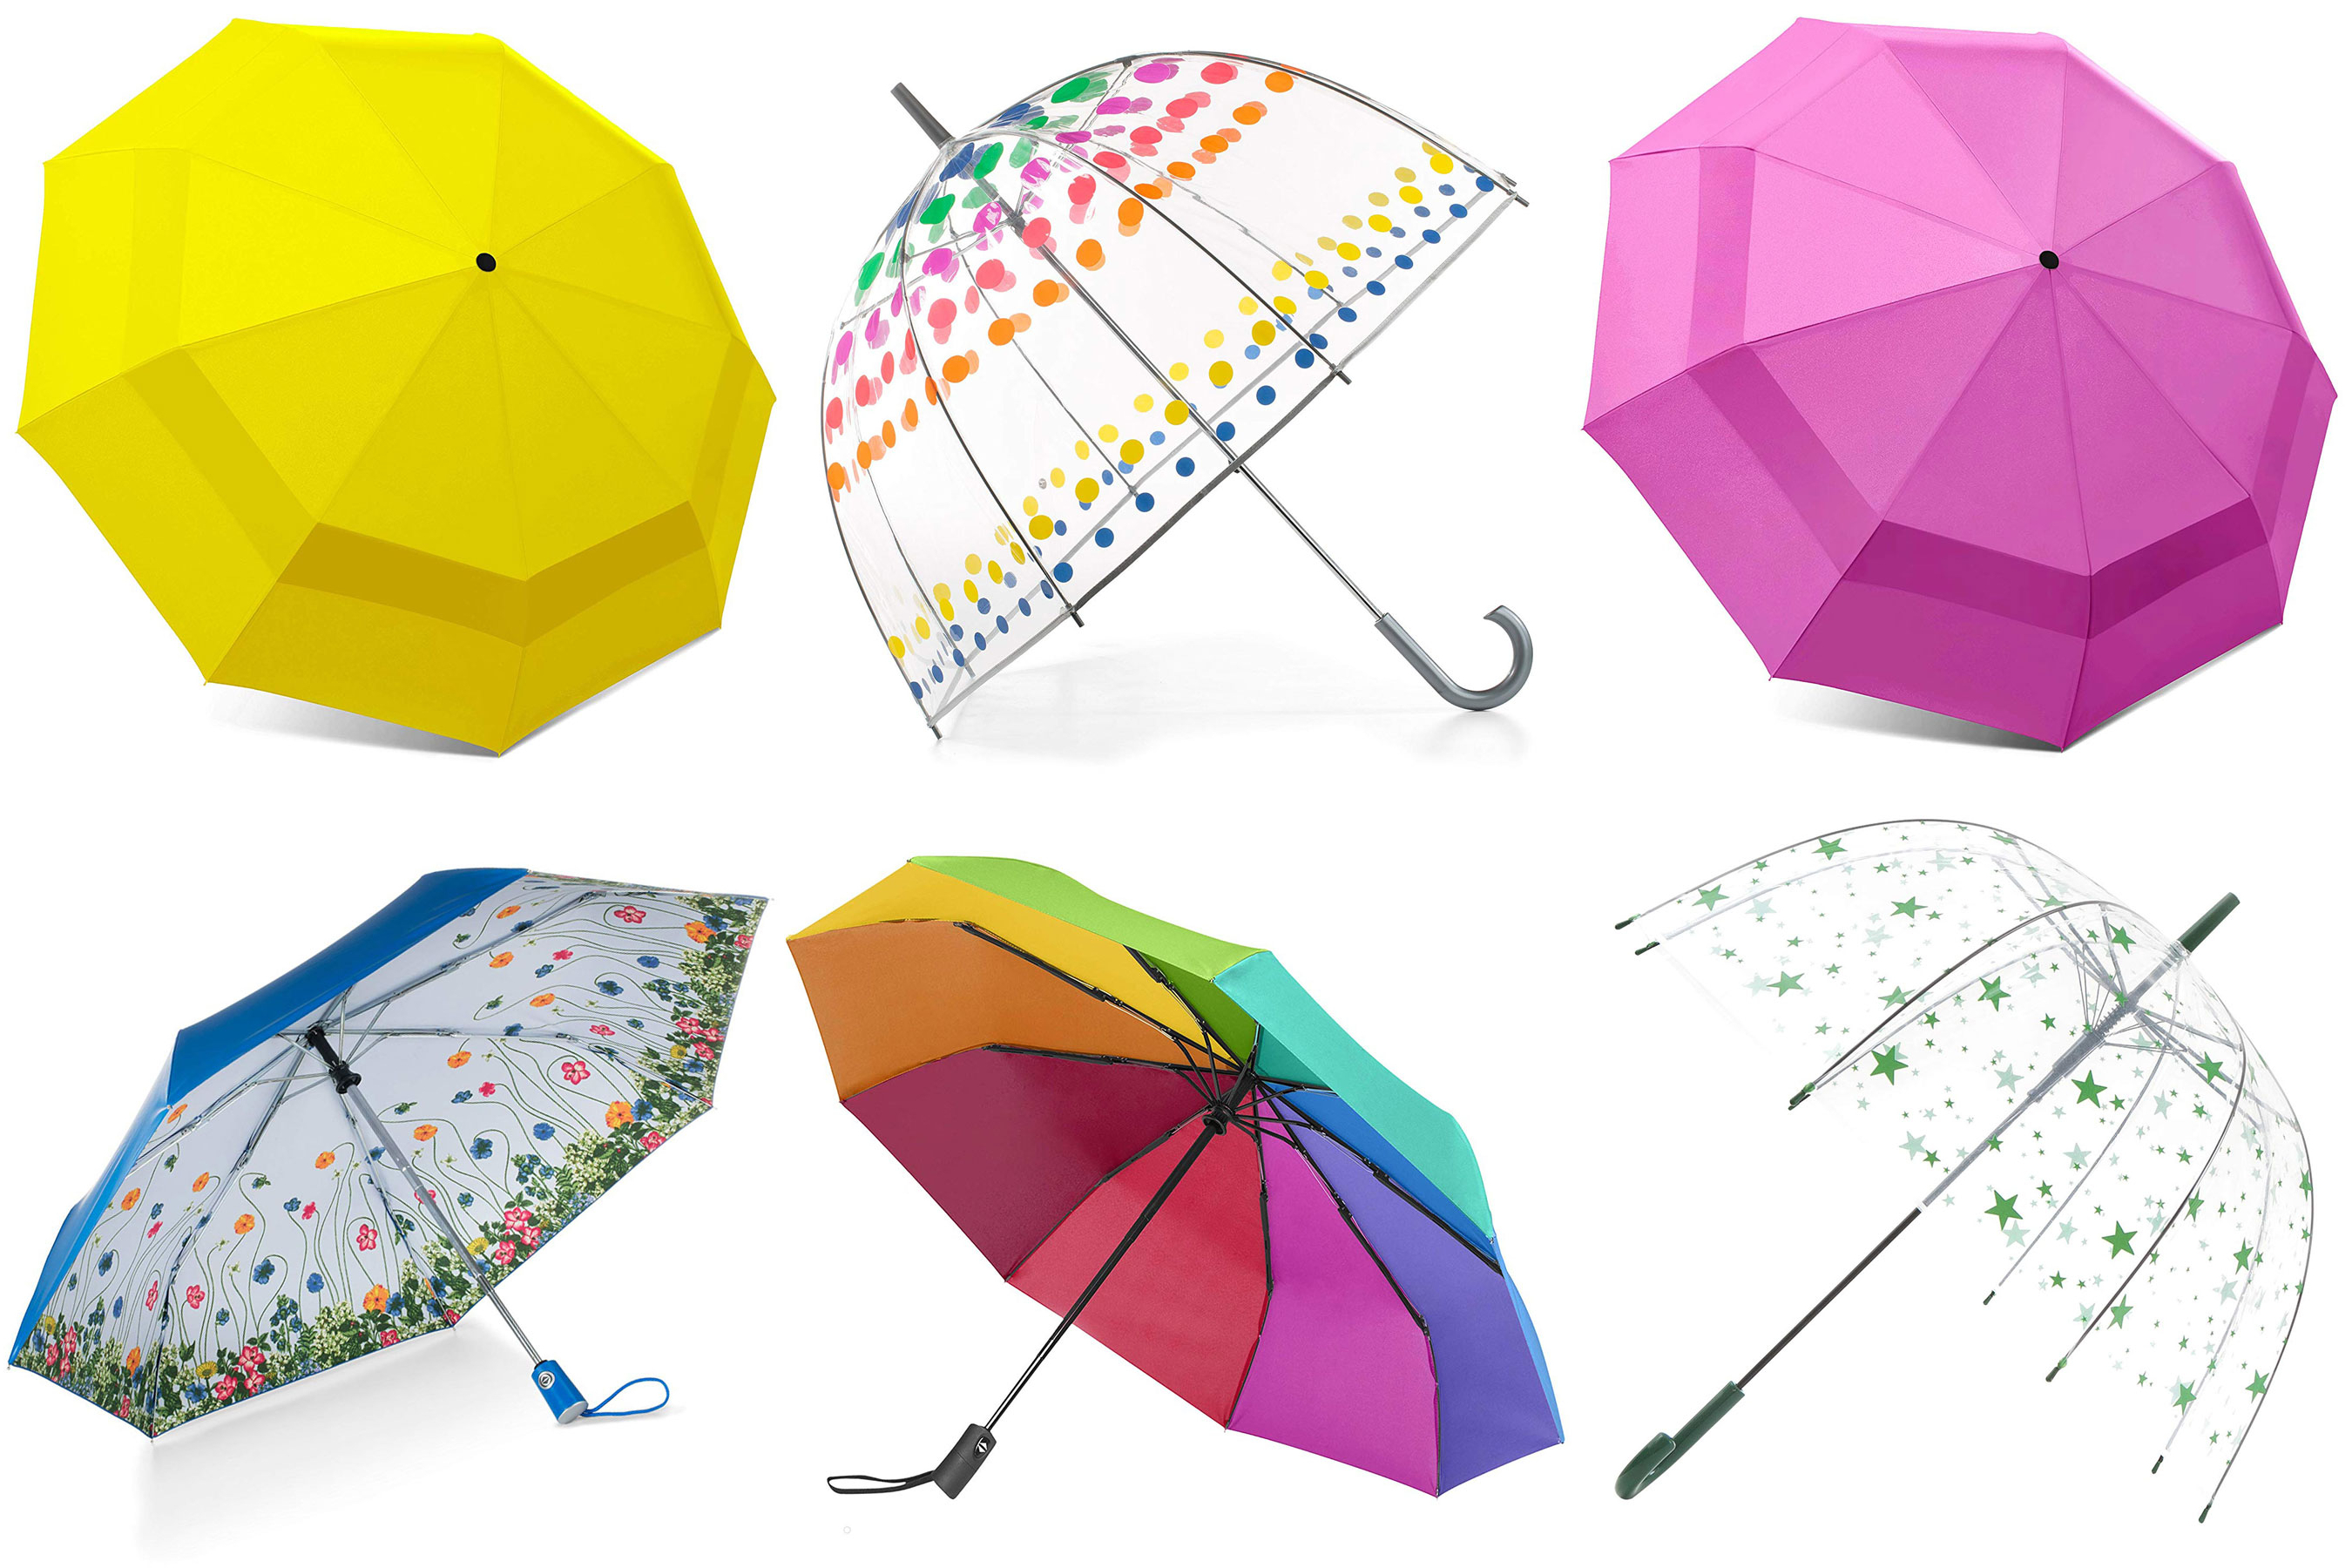 Destination Gear Square Market Umbrellas Throughout Well Liked It's On! Sales For Umbrellas (View 8 of 20)